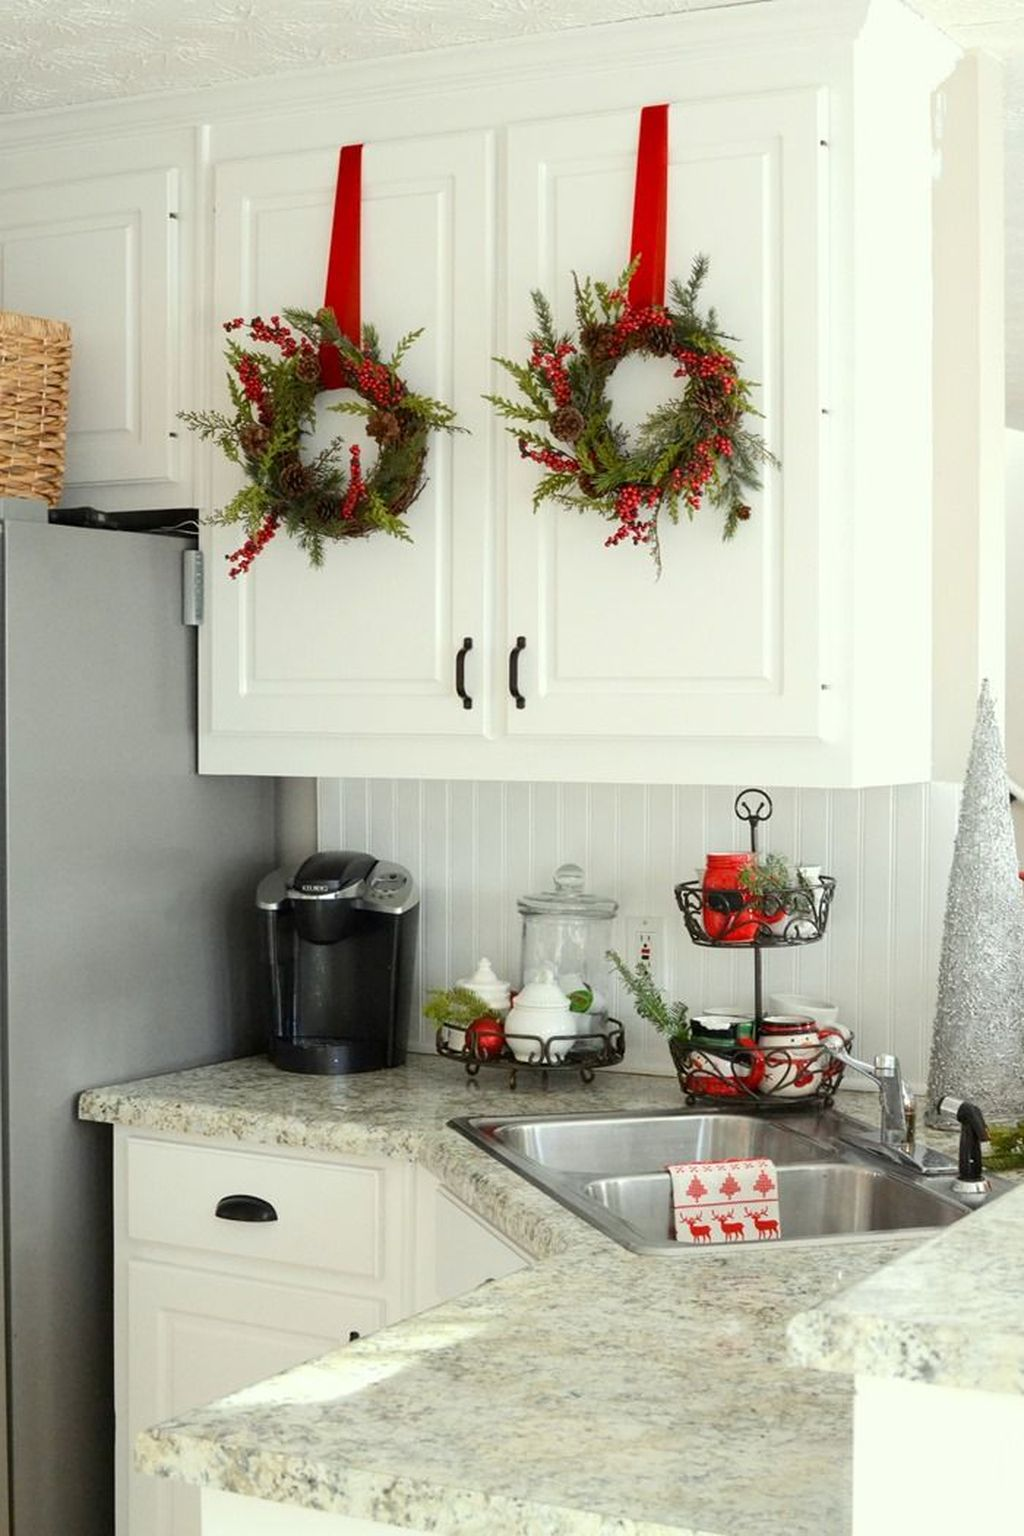 Stunning Winter Theme Kitchen Decorating Ideas 24